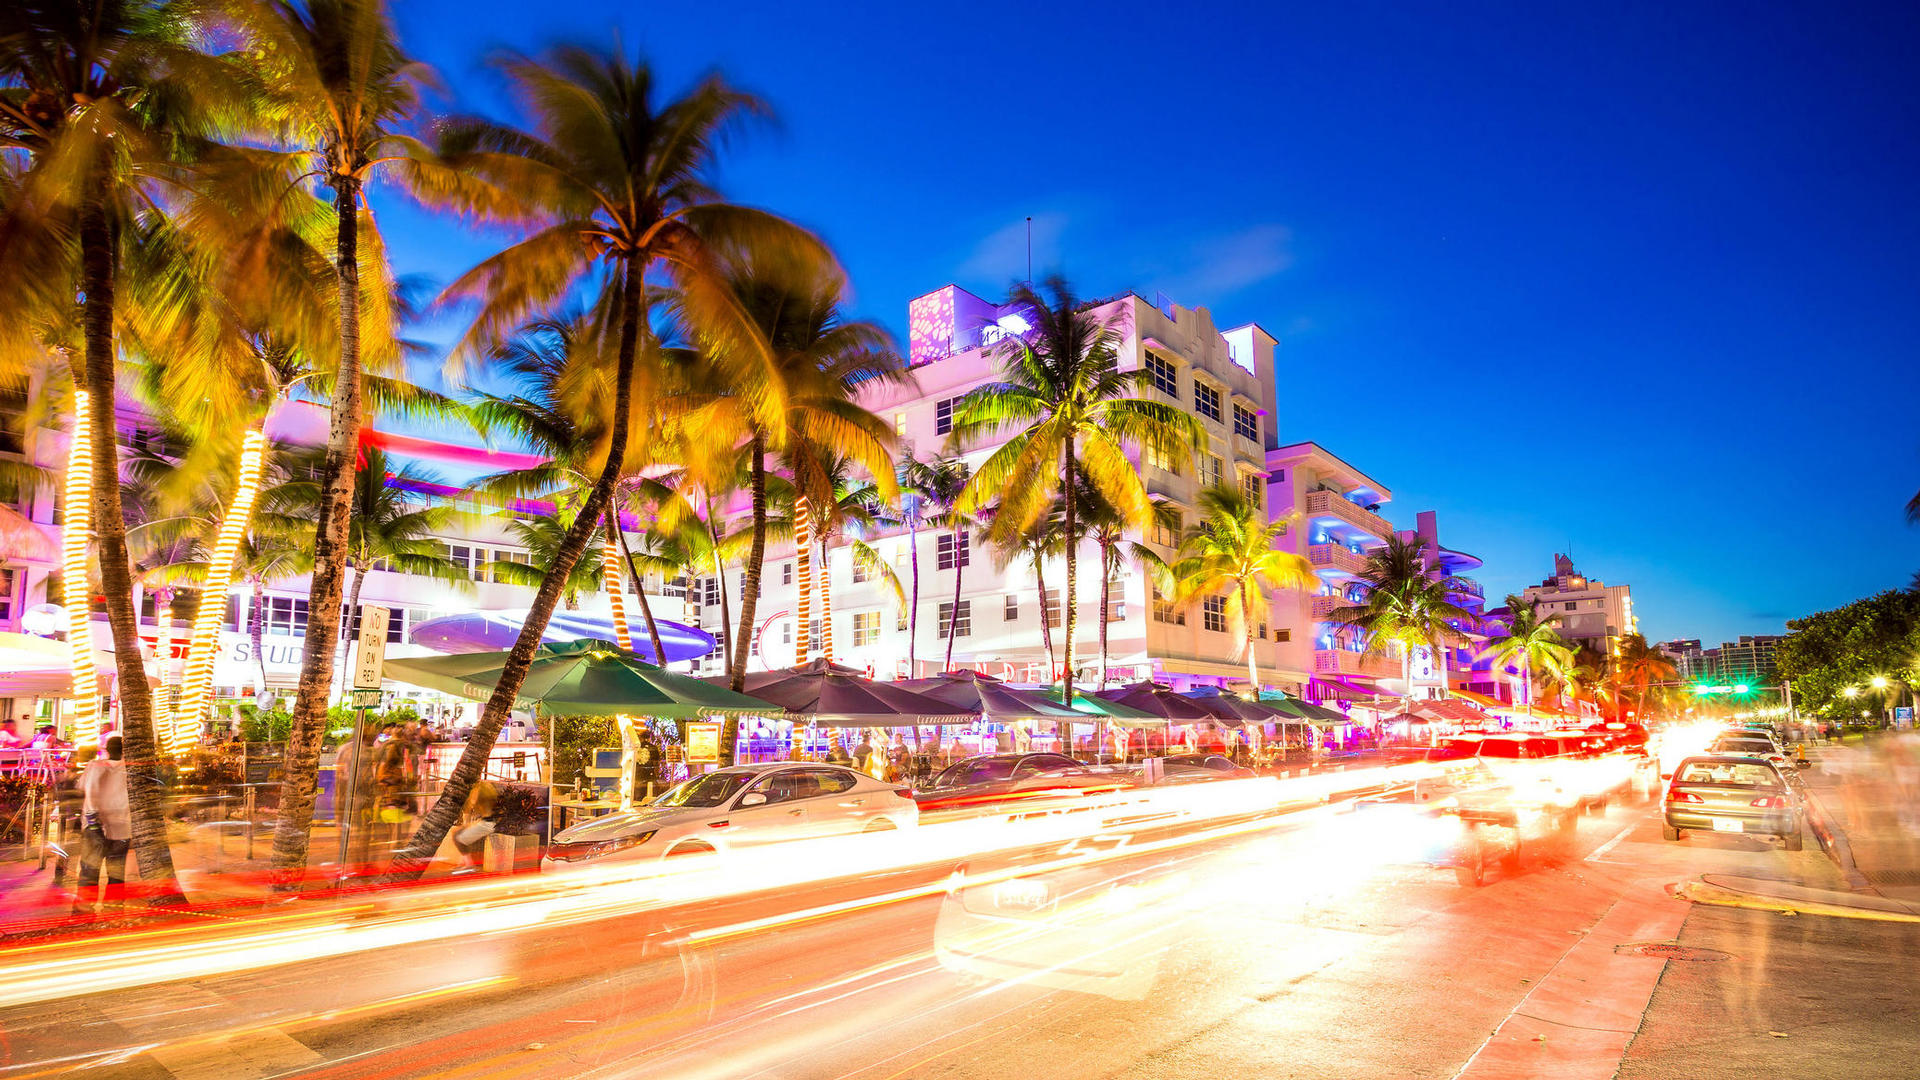 Miami beach lights at night